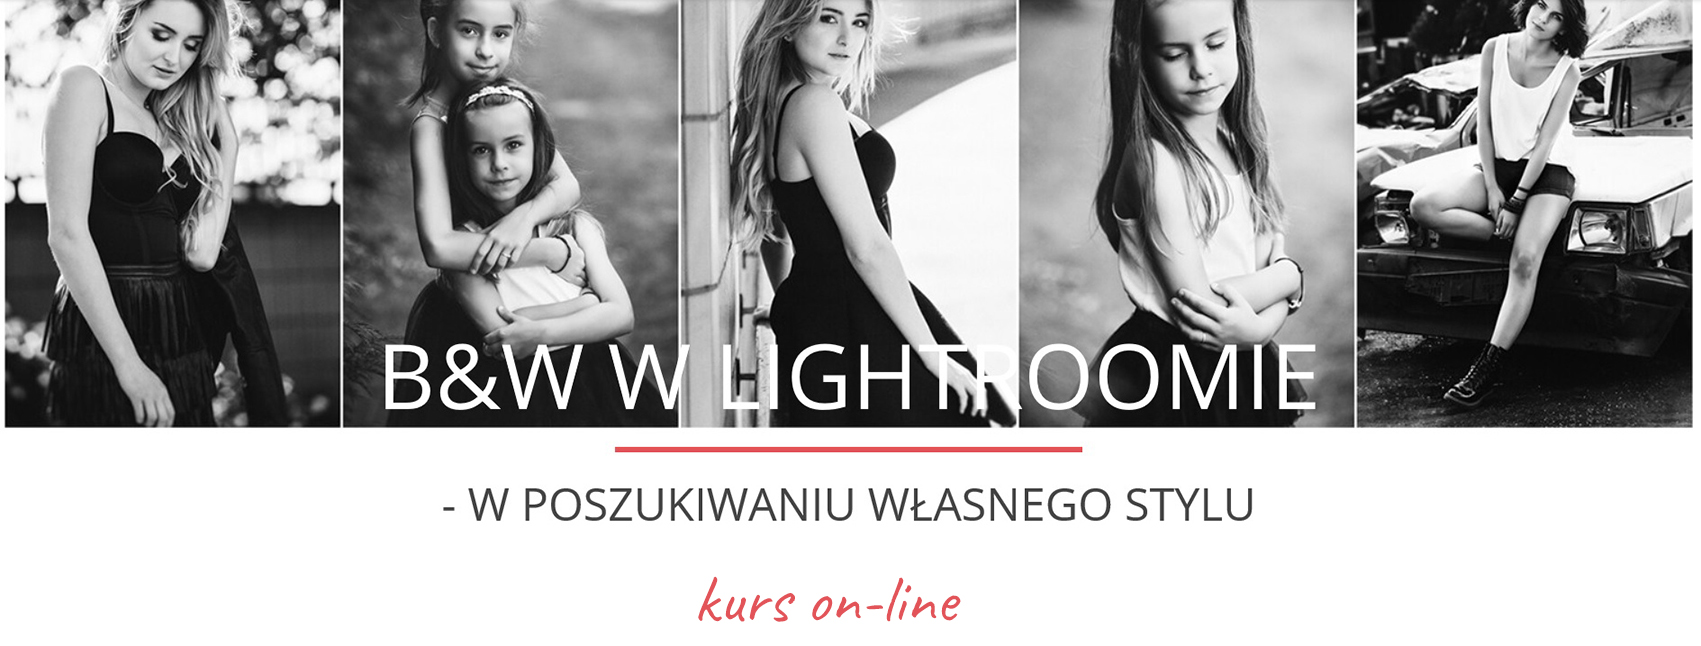 kurs on-line OBRÓBKA B&W W LIGHTROOMIE